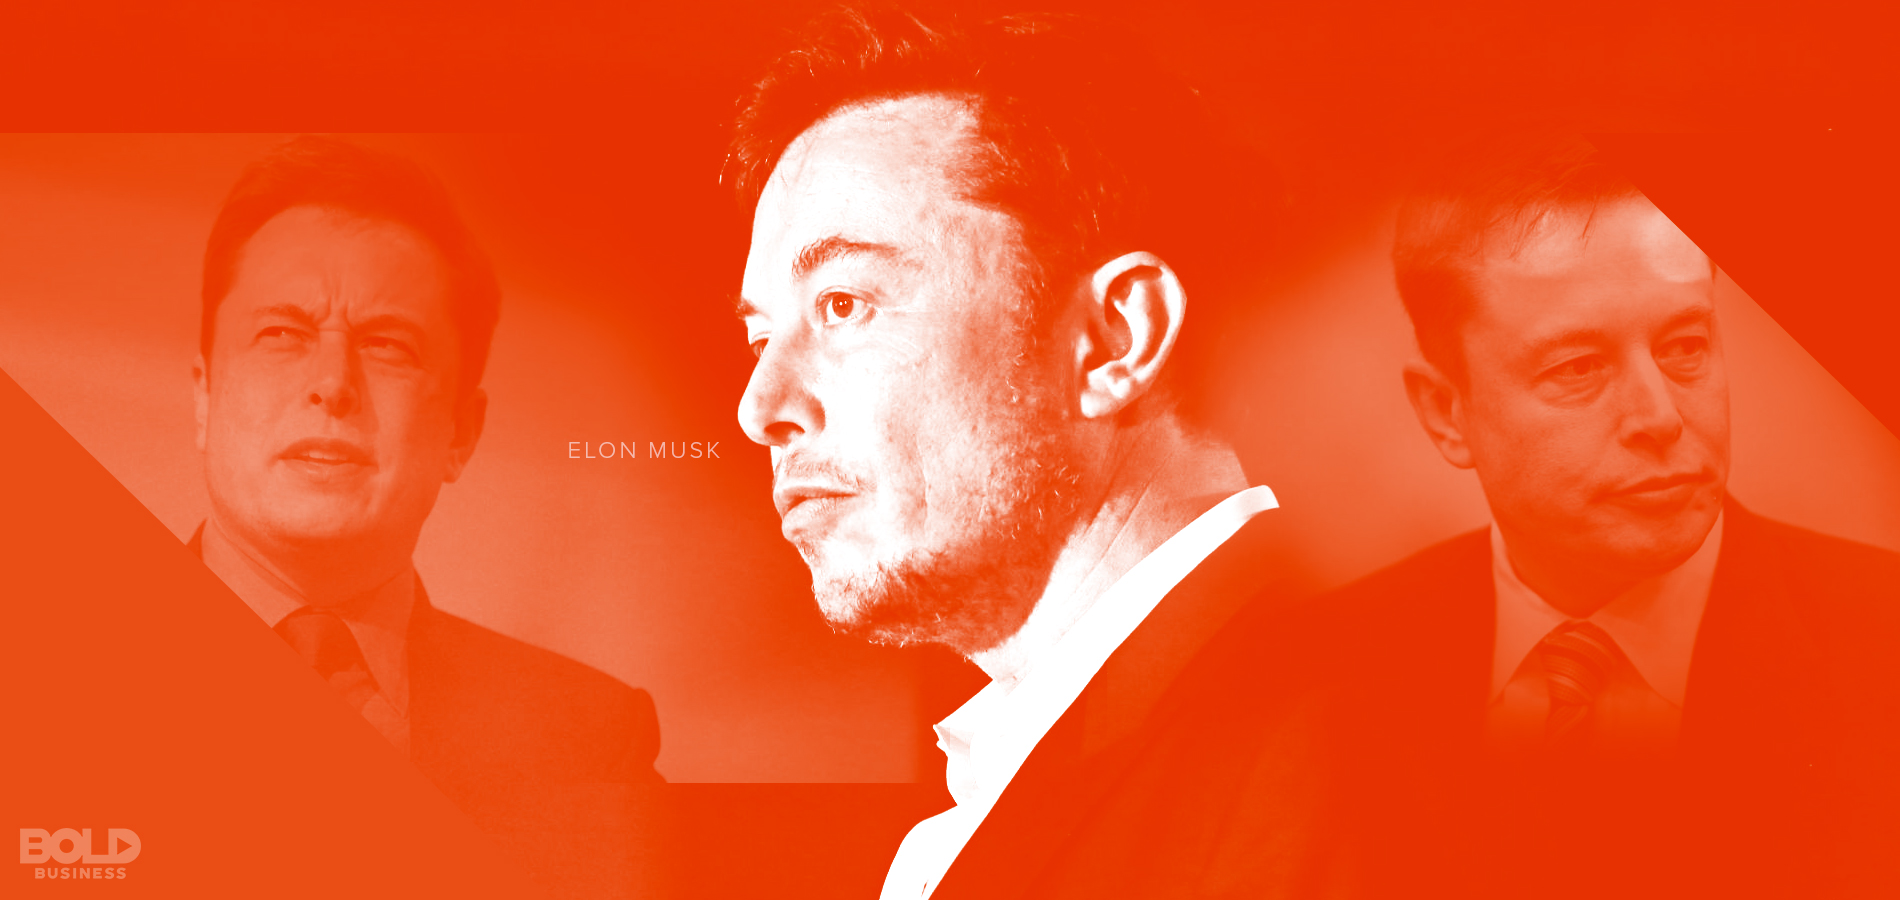 Elon Musk Bold Leadership